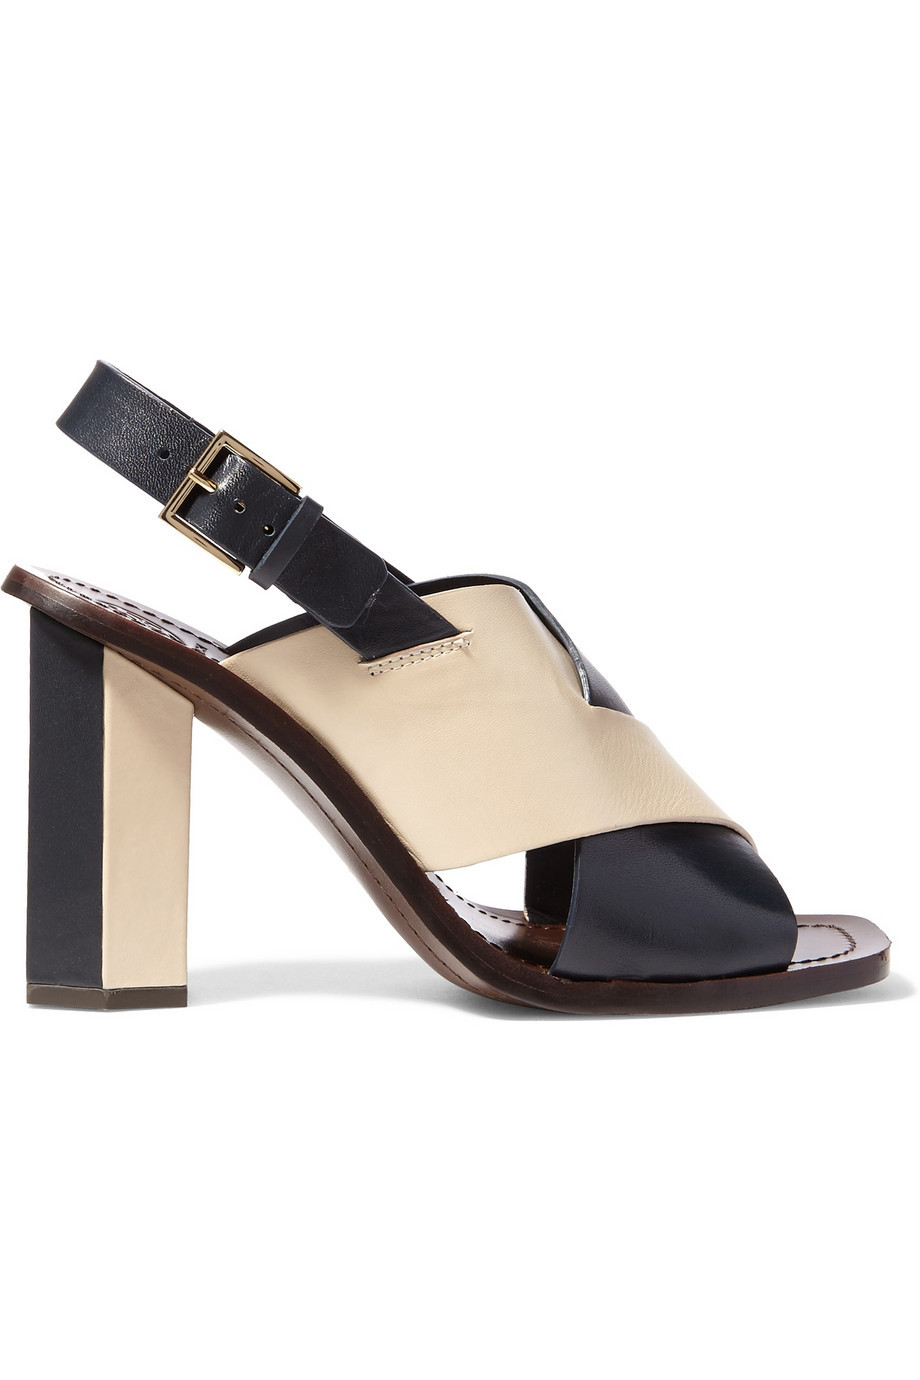 Bleecker Two Tone Leather Sandals Navy - secondary colour: ivory/cream; predominant colour: navy; occasions: evening, occasion; material: leather; heel height: high; ankle detail: ankle strap; heel: block; toe: open toe/peeptoe; style: strappy; finish: plain; pattern: colourblock; season: s/s 2016; wardrobe: event